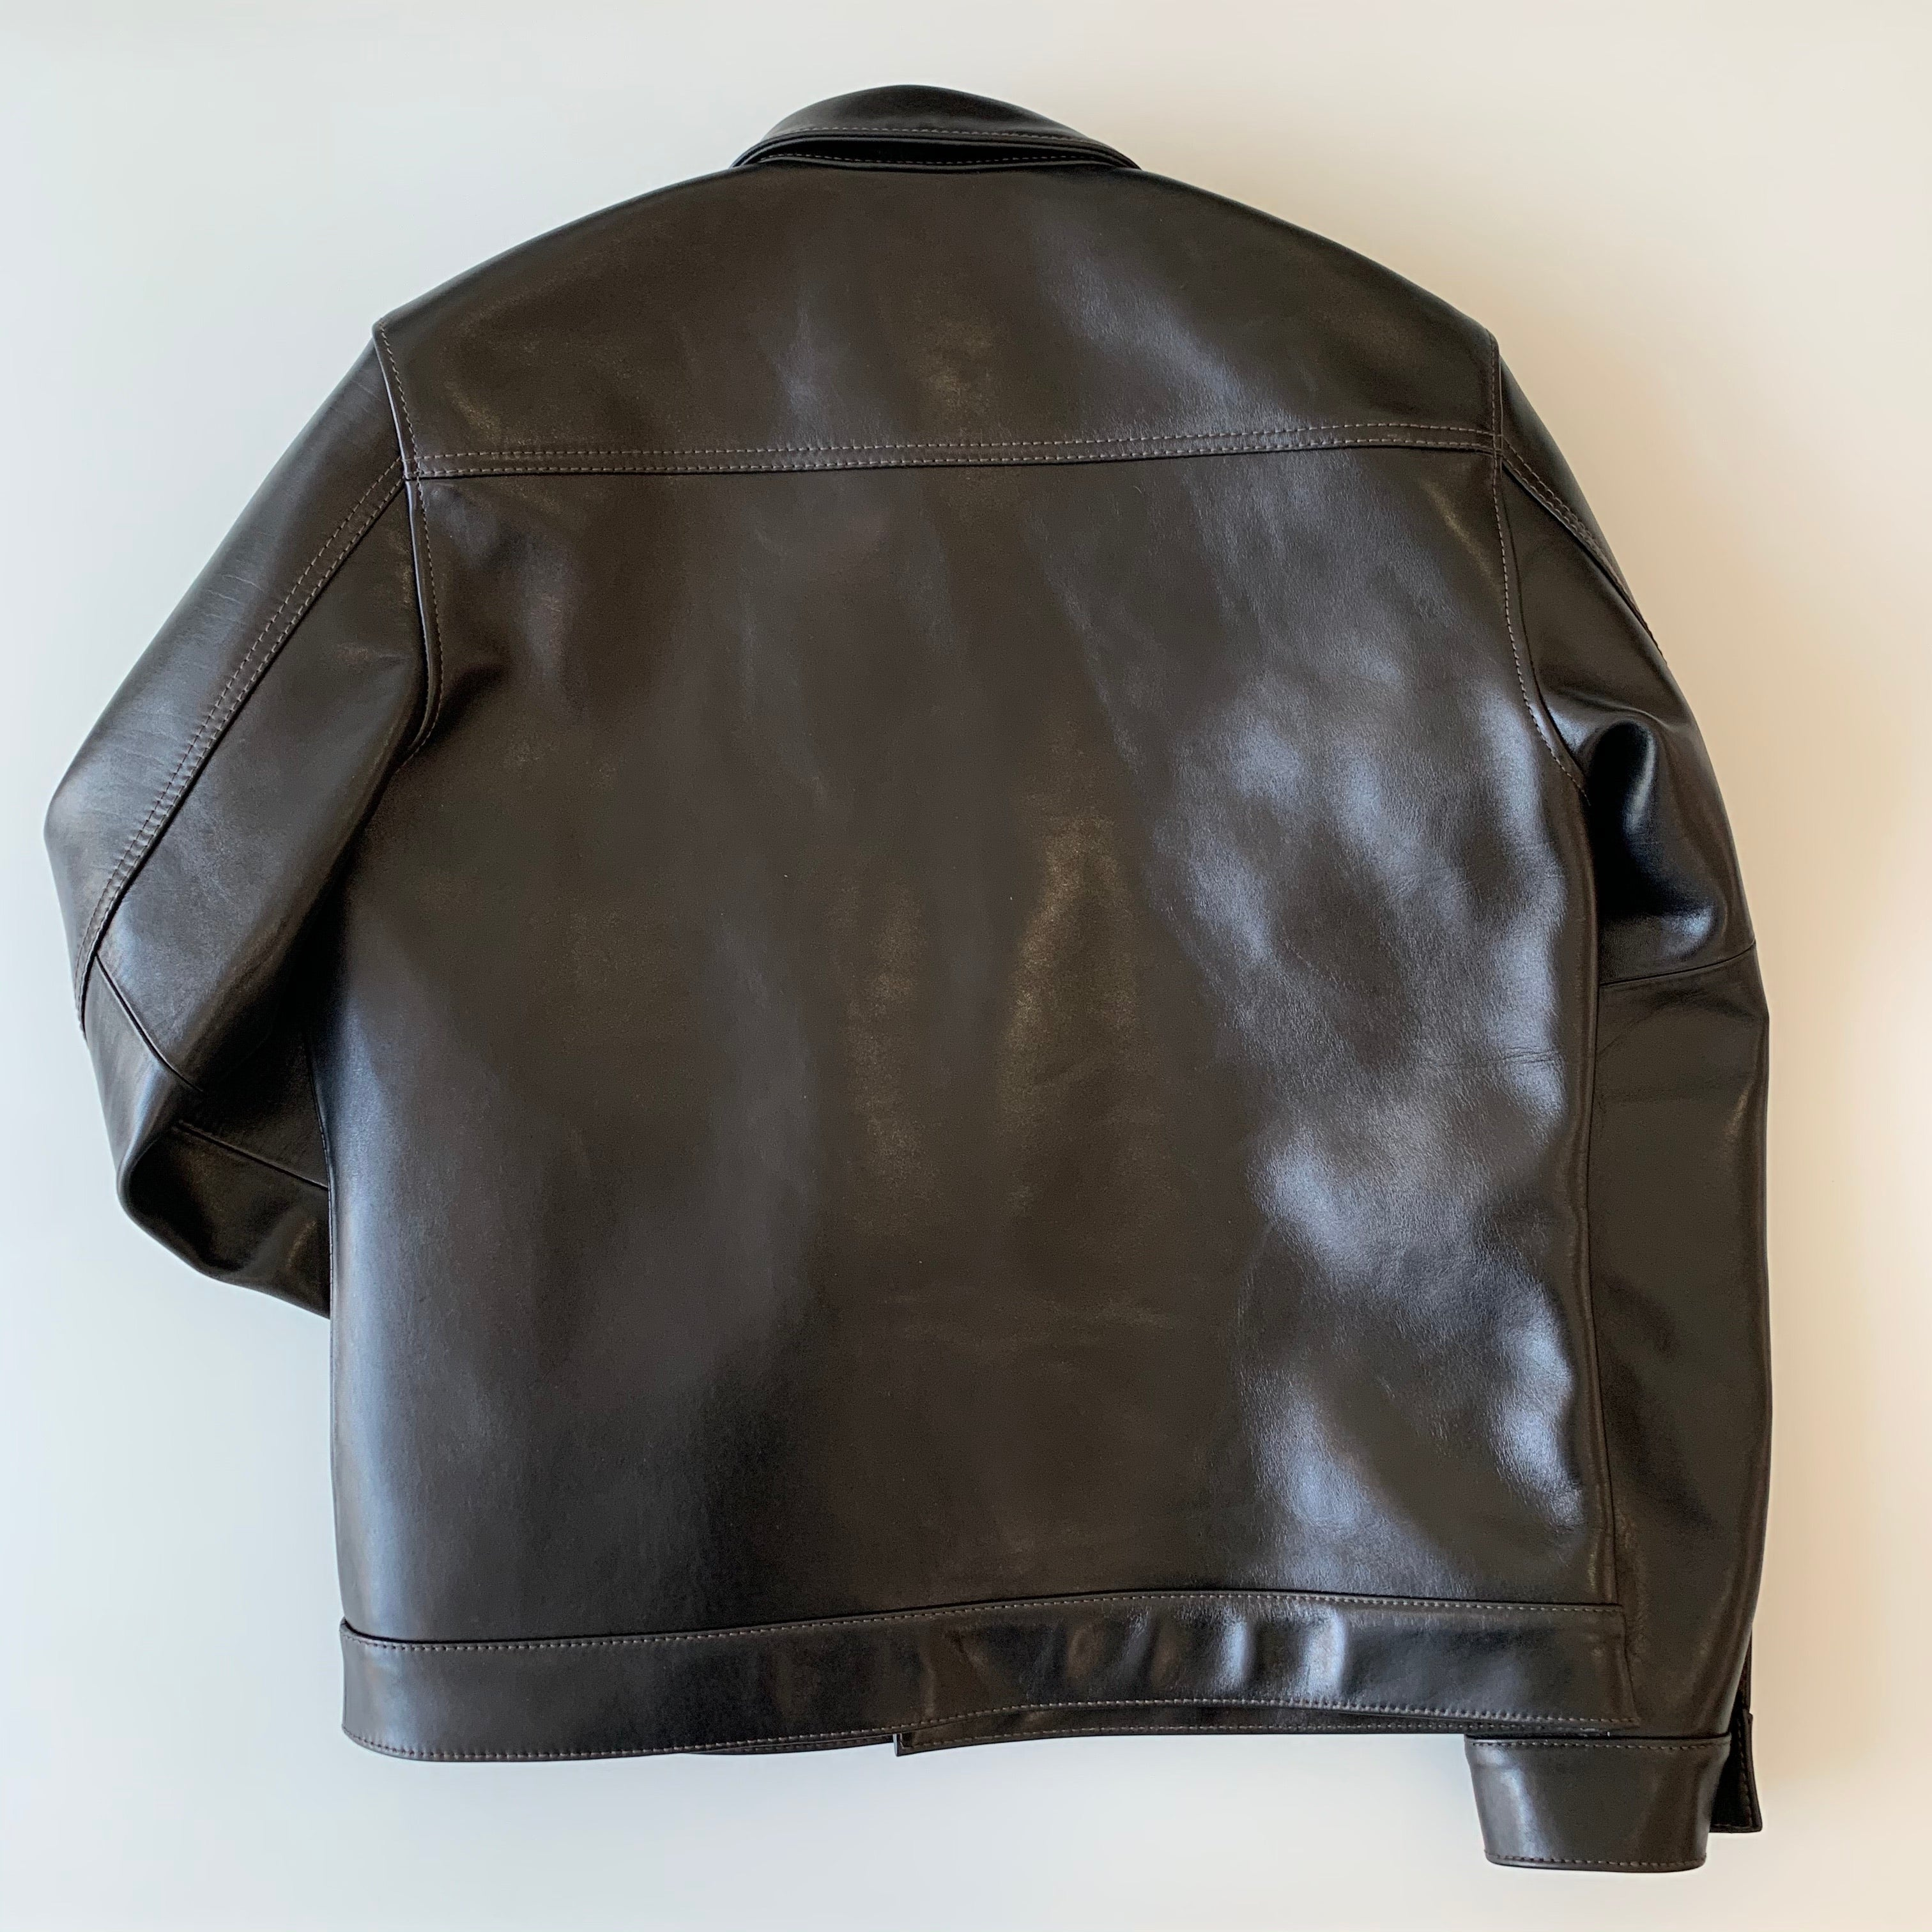 Teacore Aniline Horsehide Type I G Jacket in Black (LB-140)